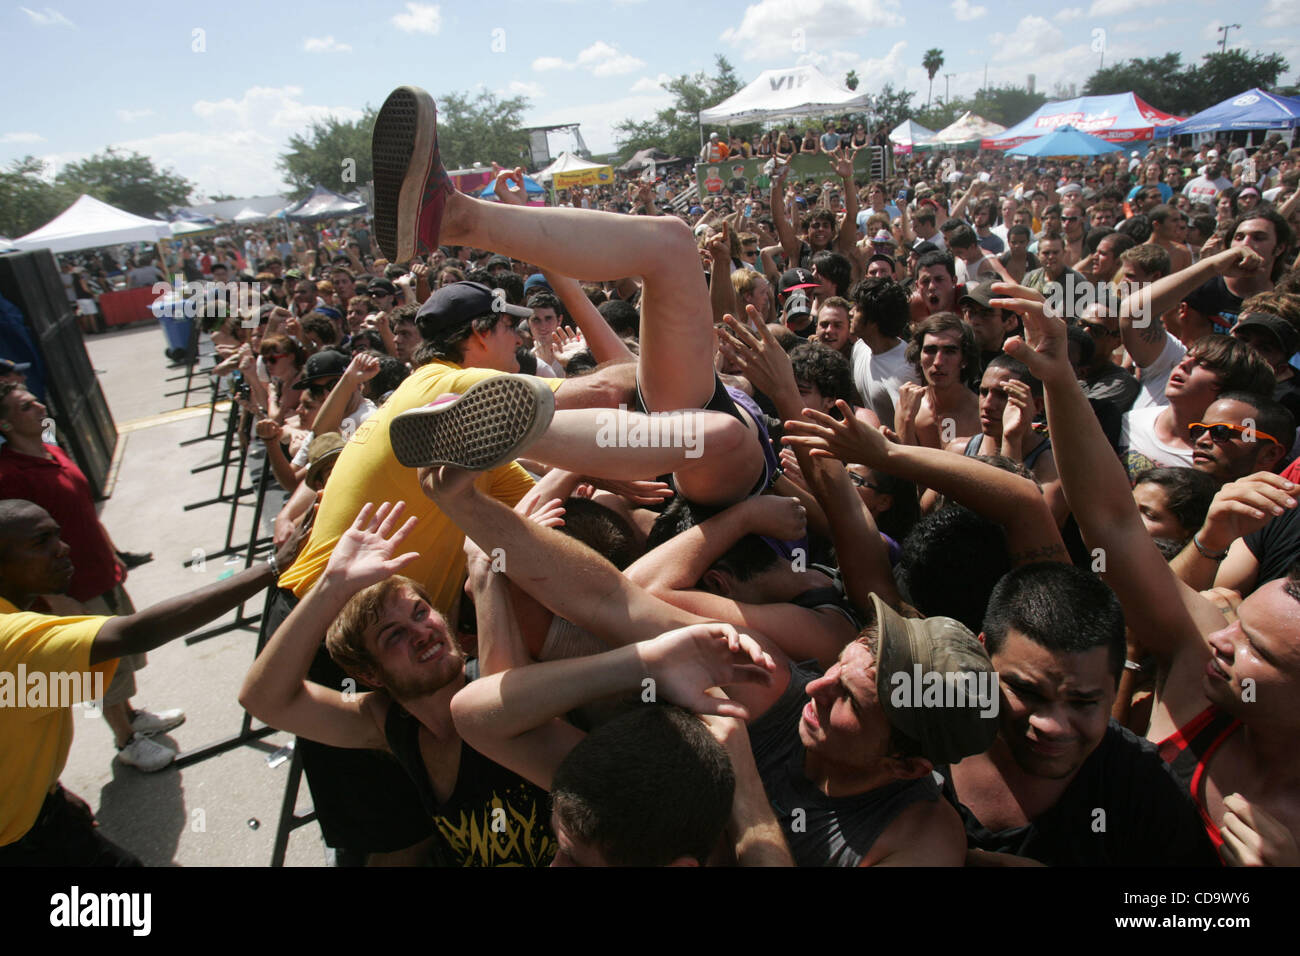 July 24, 2010 - West Palm Beach, Florida, US - A fan loses support while crowd surfing during the Vans Warped Tour - Stock Image